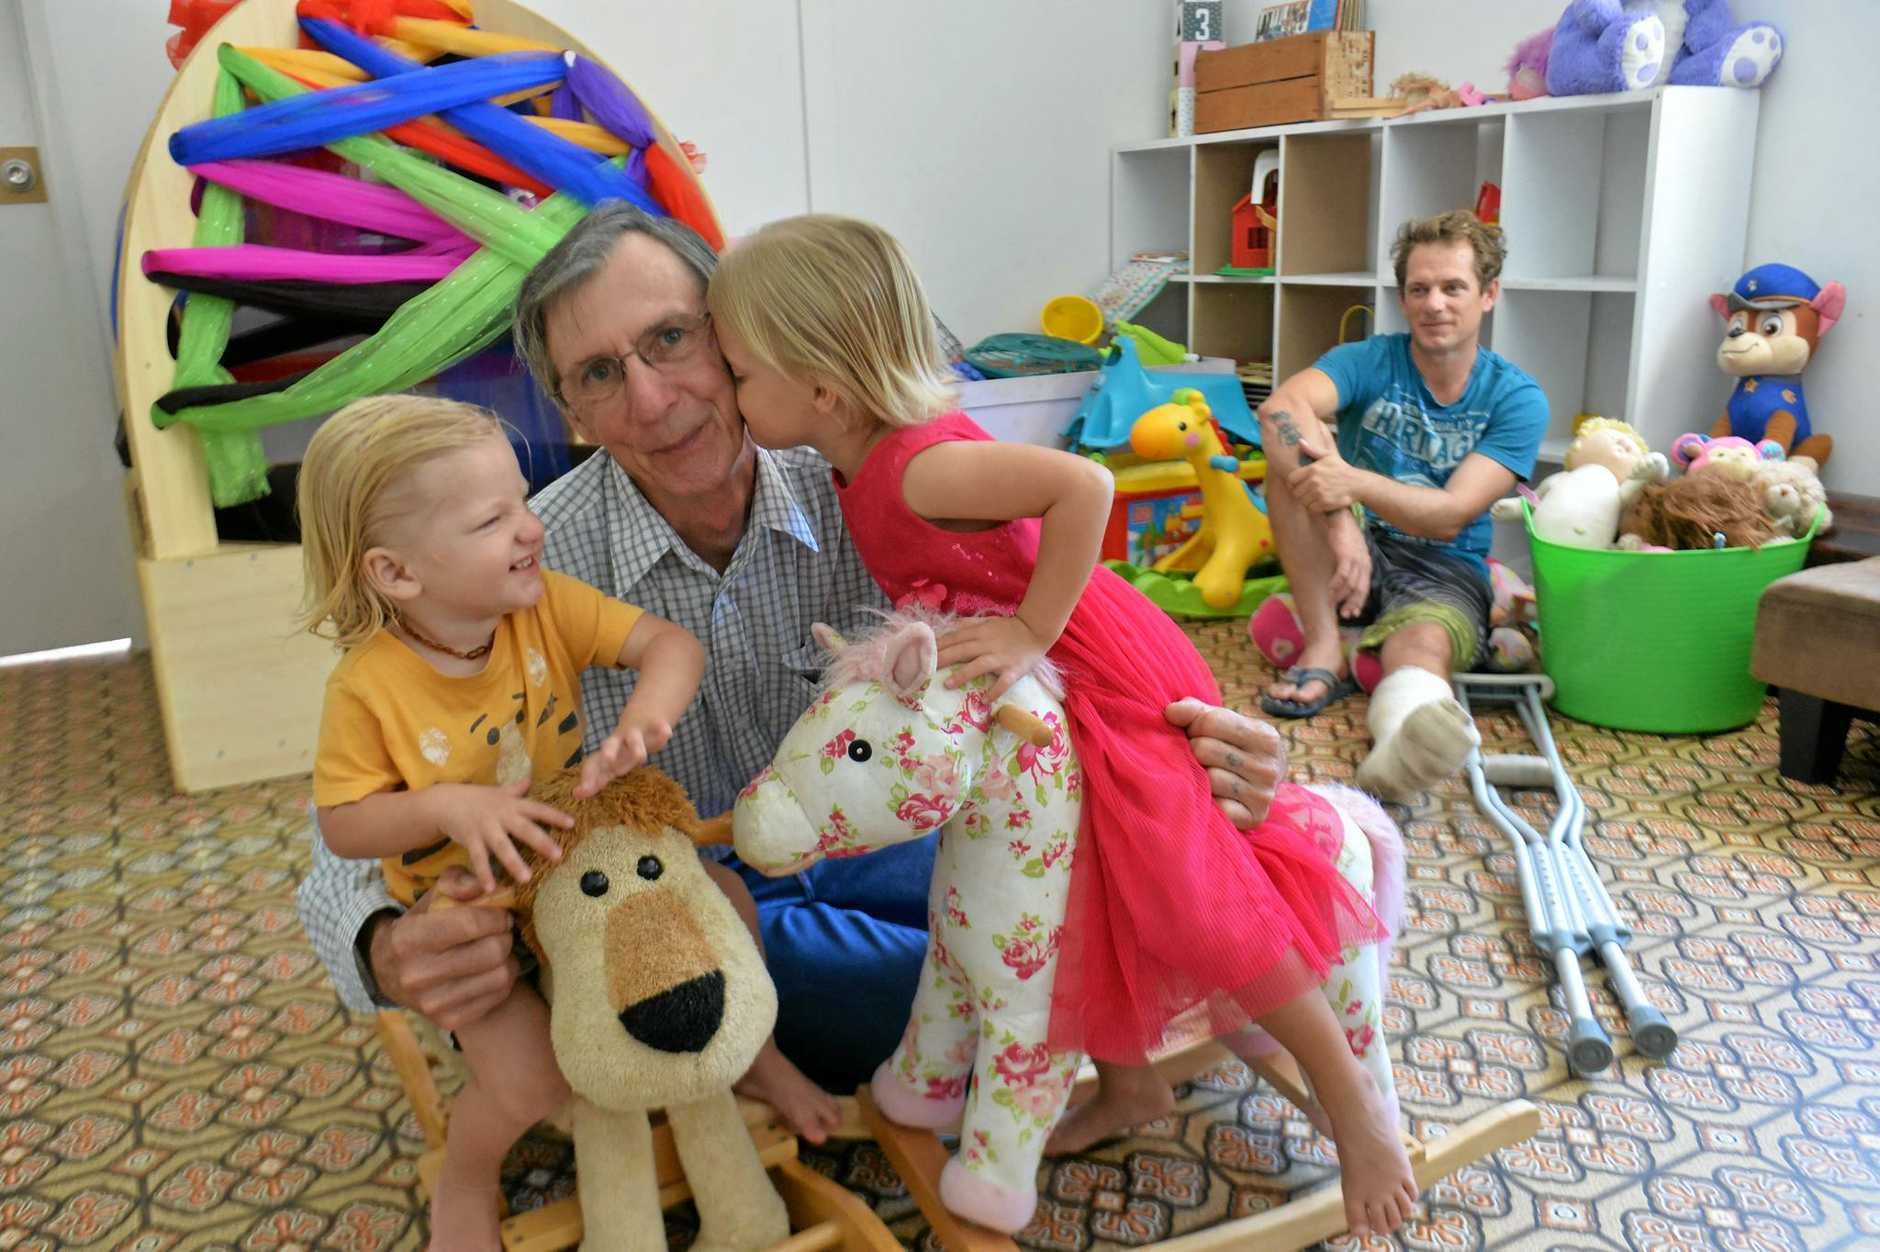 WHEN THINGS GO WRONG: Both parents crippled by motorbike crashes within two weeks of each other - that's when you need your family. Grandpa, Max Smith, is Cristy Smith's dad - pictured here with grandkids, Max, 2, and Willow, 3. Bradley Clout-Dale, Cristy's fiancée, is in the background.